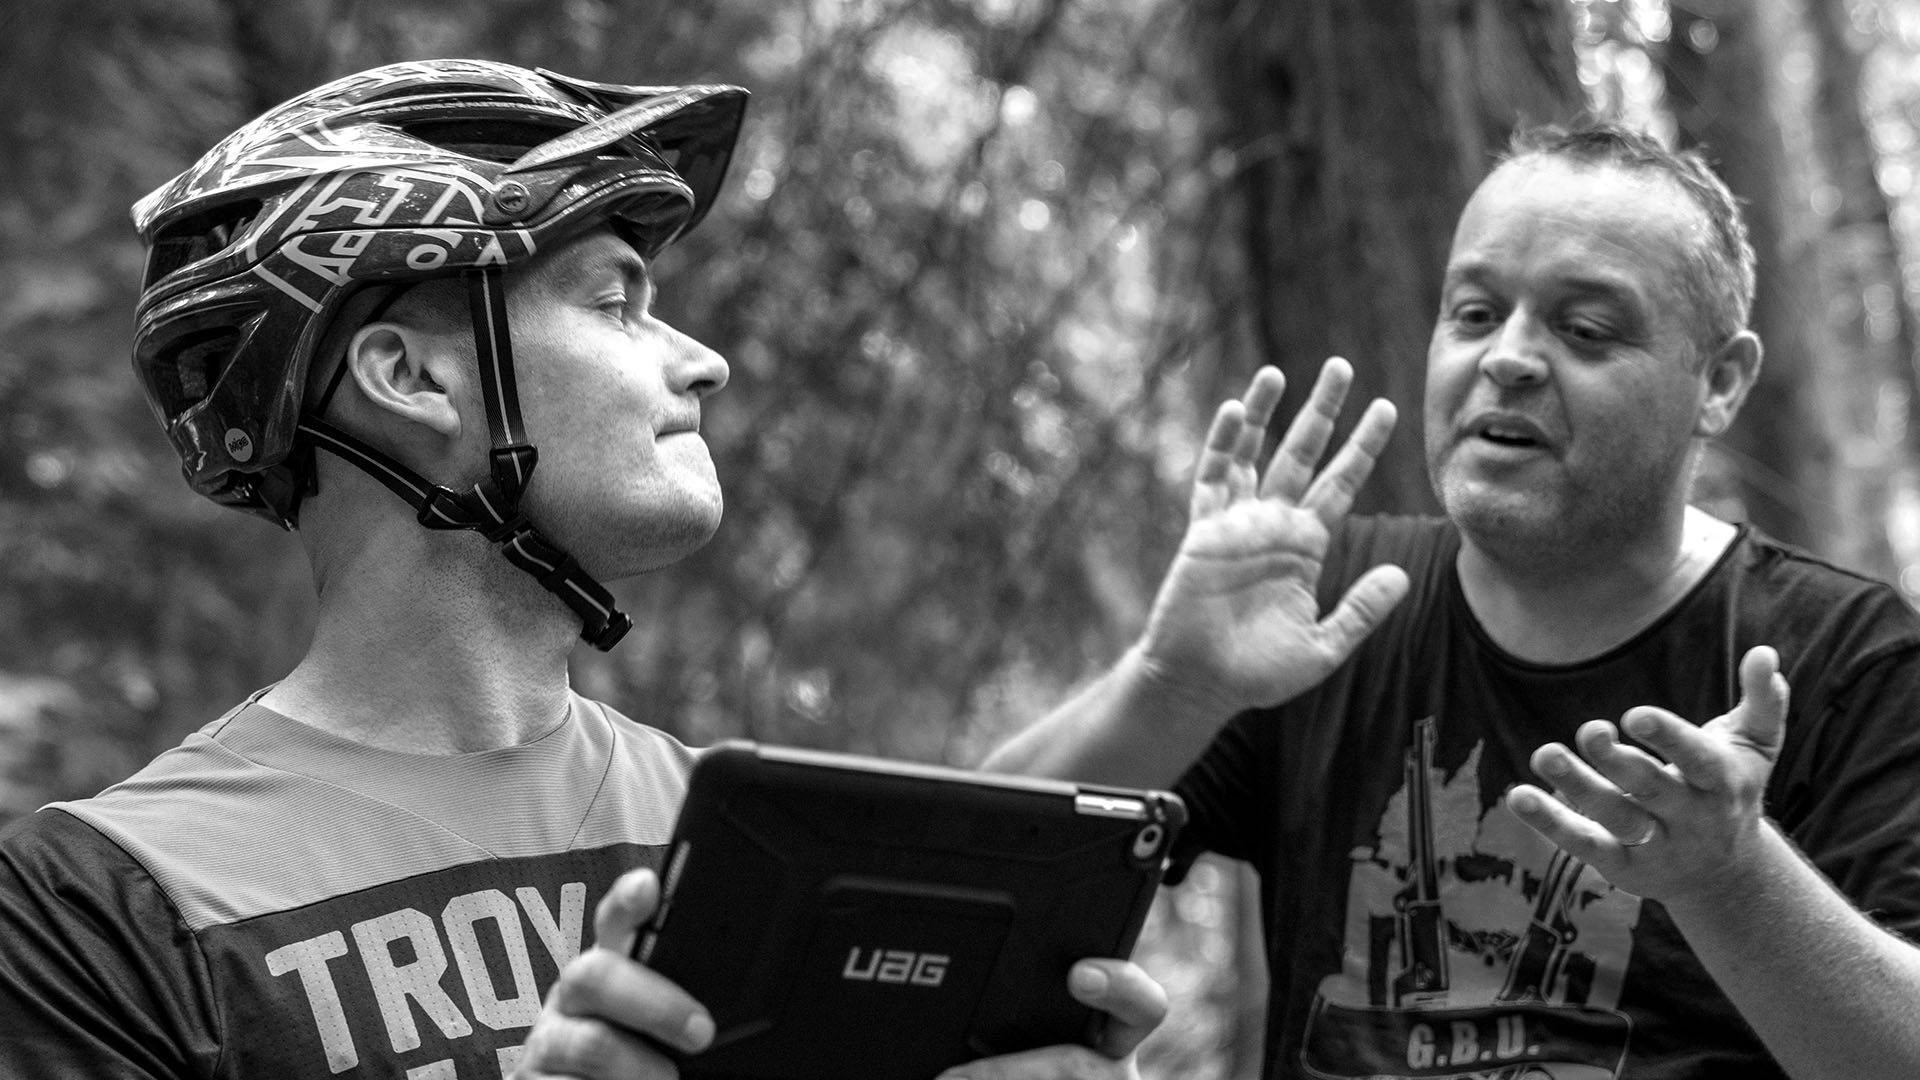 +3 Coach Alan Milway showing a rider his technique on the iPad